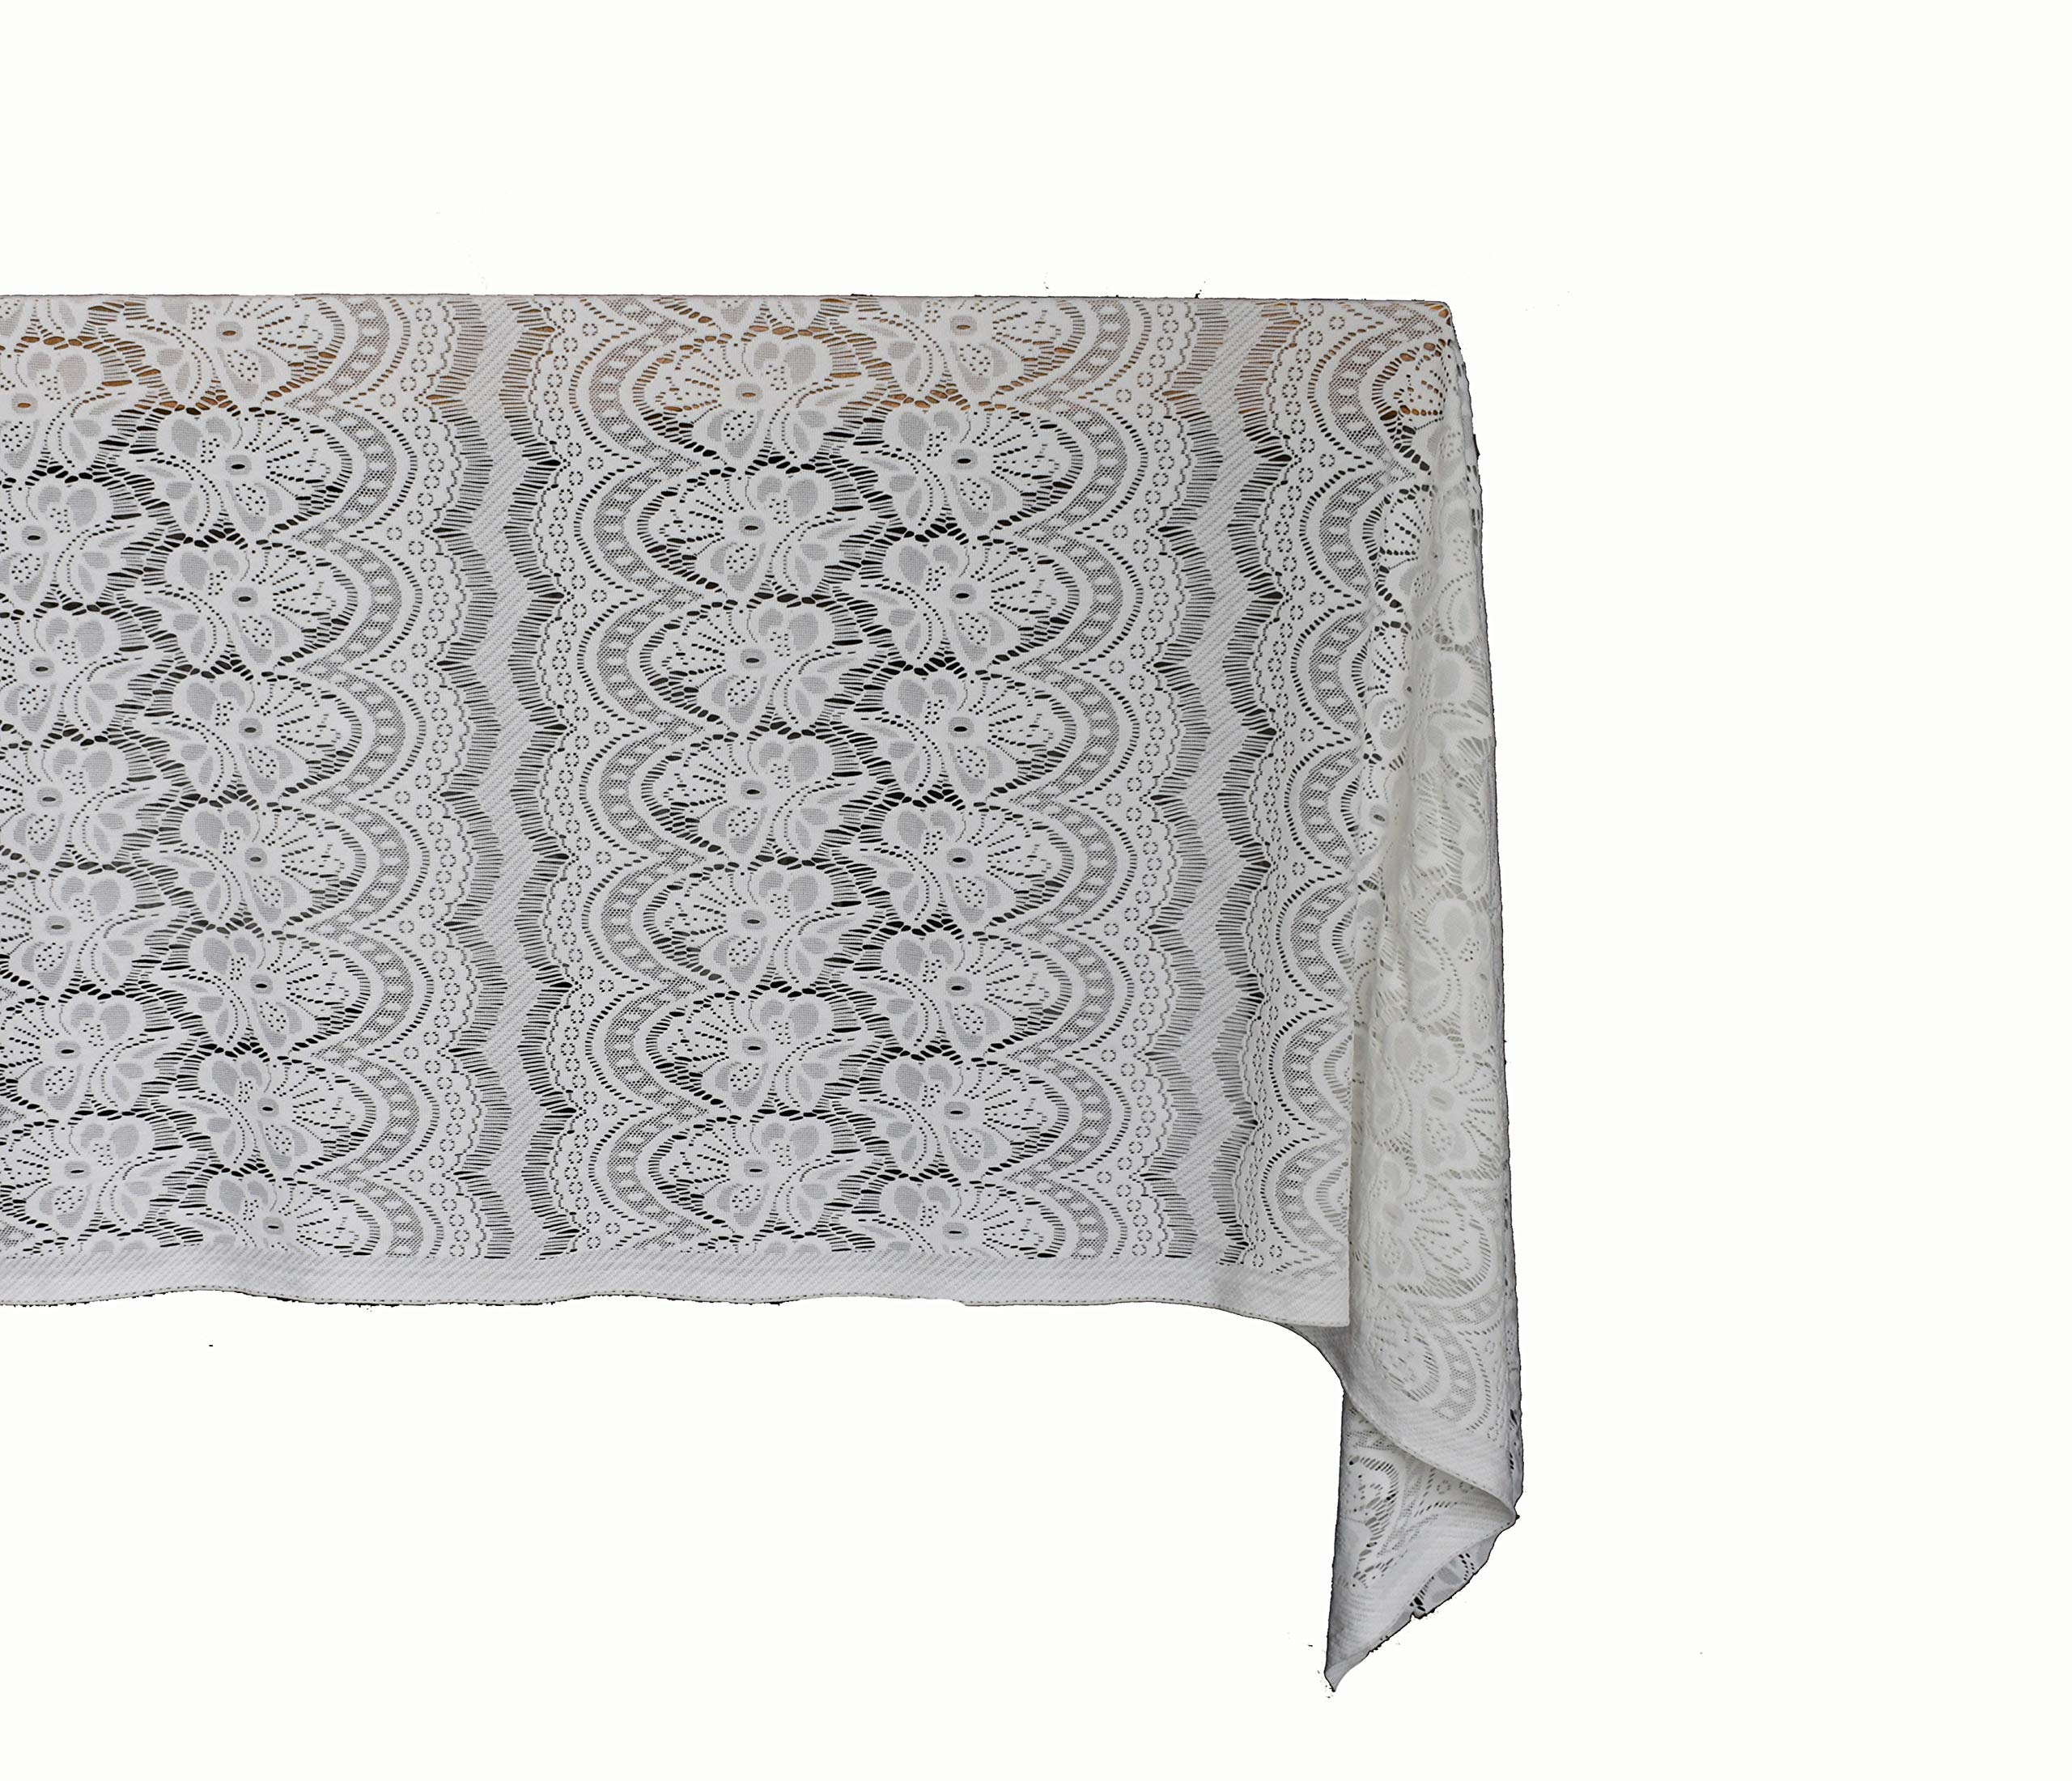 ADCorner 60''x120'' Classic White Lace Tablecloths Overlay for Elegant Chic Weddings Rectangle Vintage Embroidered Bridal Baby Girl Shower Décor Spring Summer Outdoor Garden Tea Party (Off White)